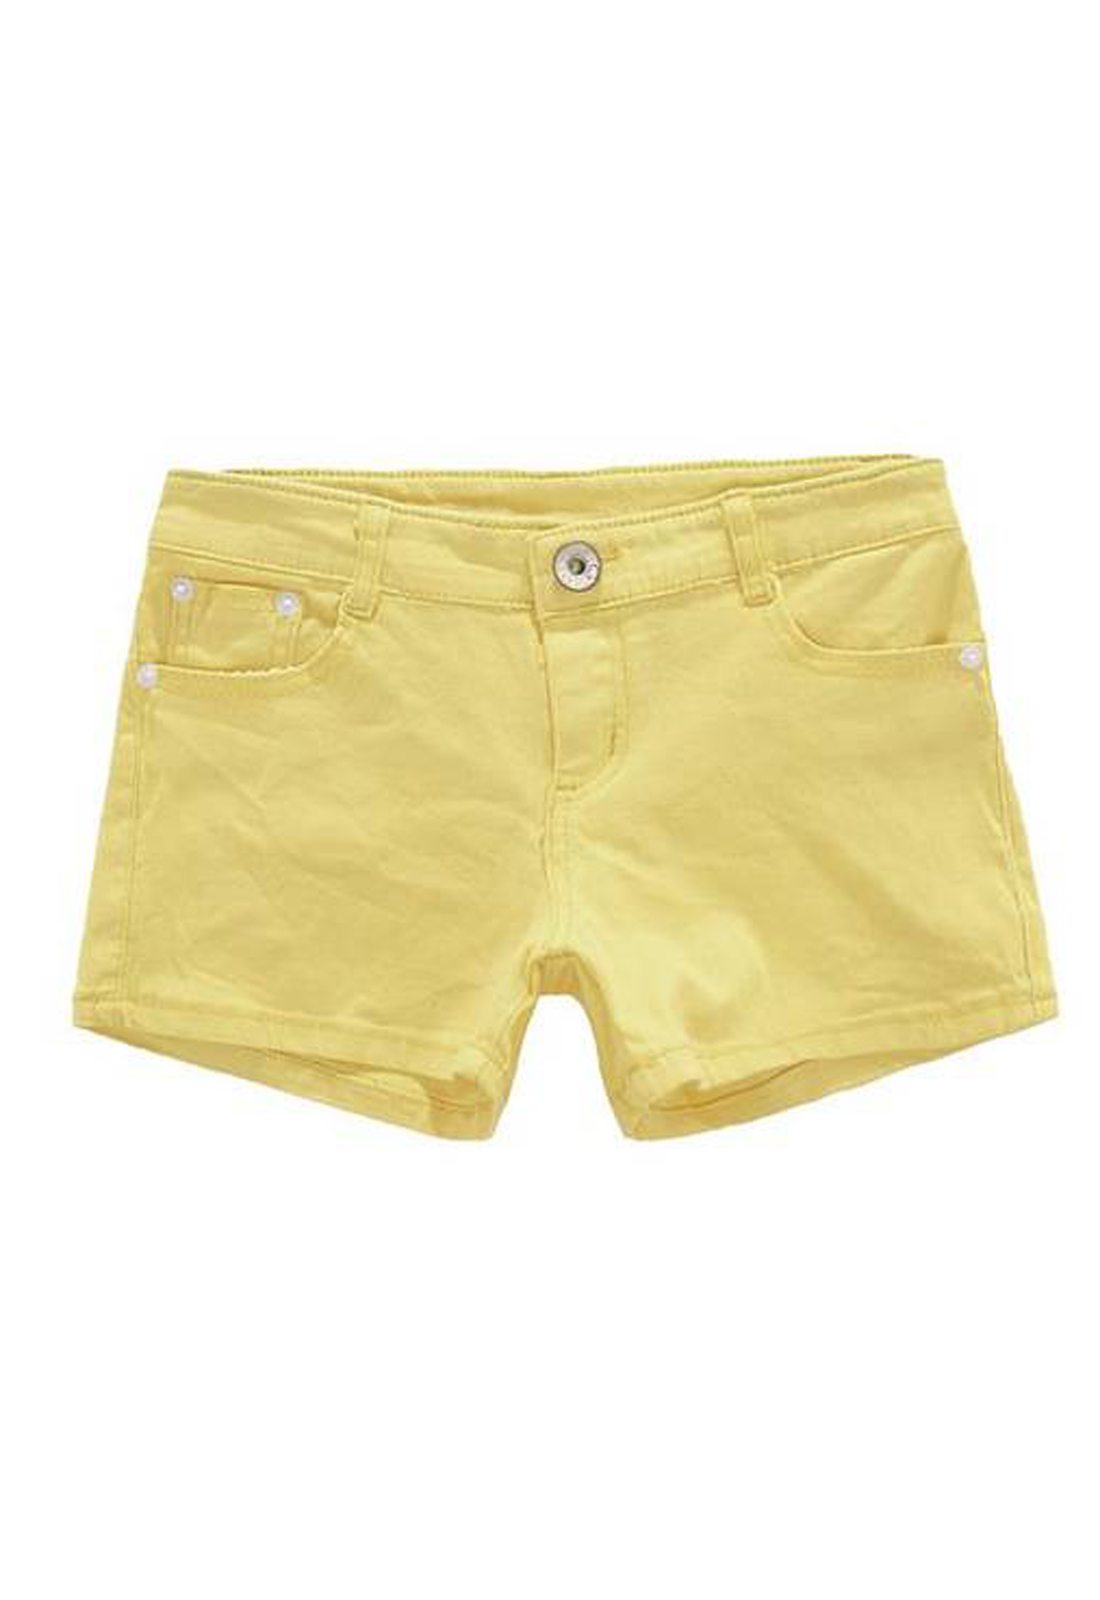 BG-impression Casual Candy Color Hot Shorts Pants